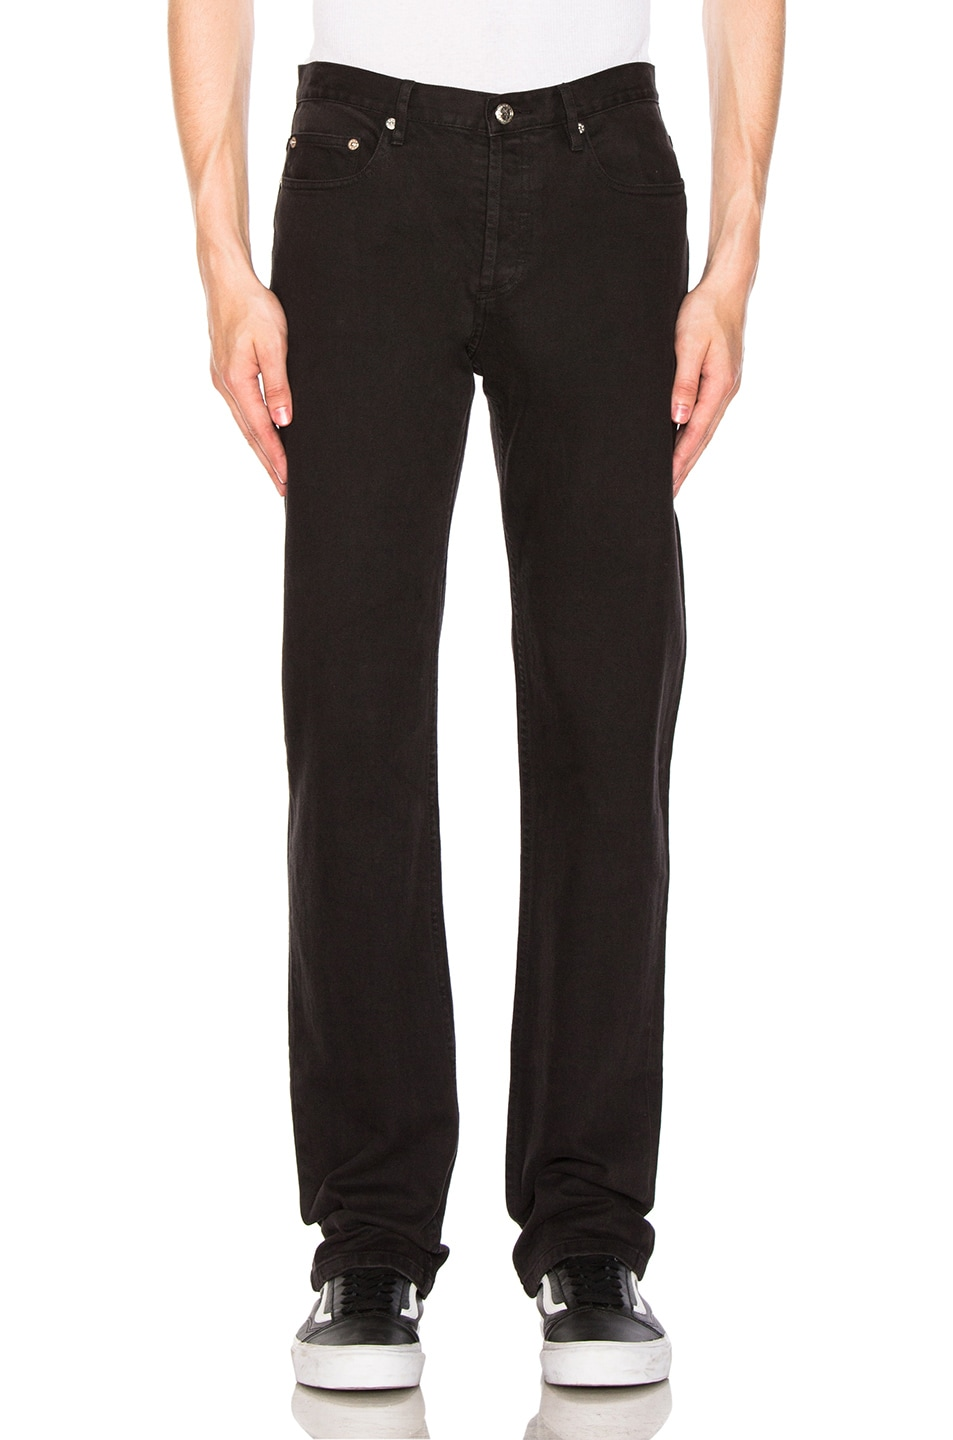 Petit Standard Slim Fit Jeans In Noir in Black